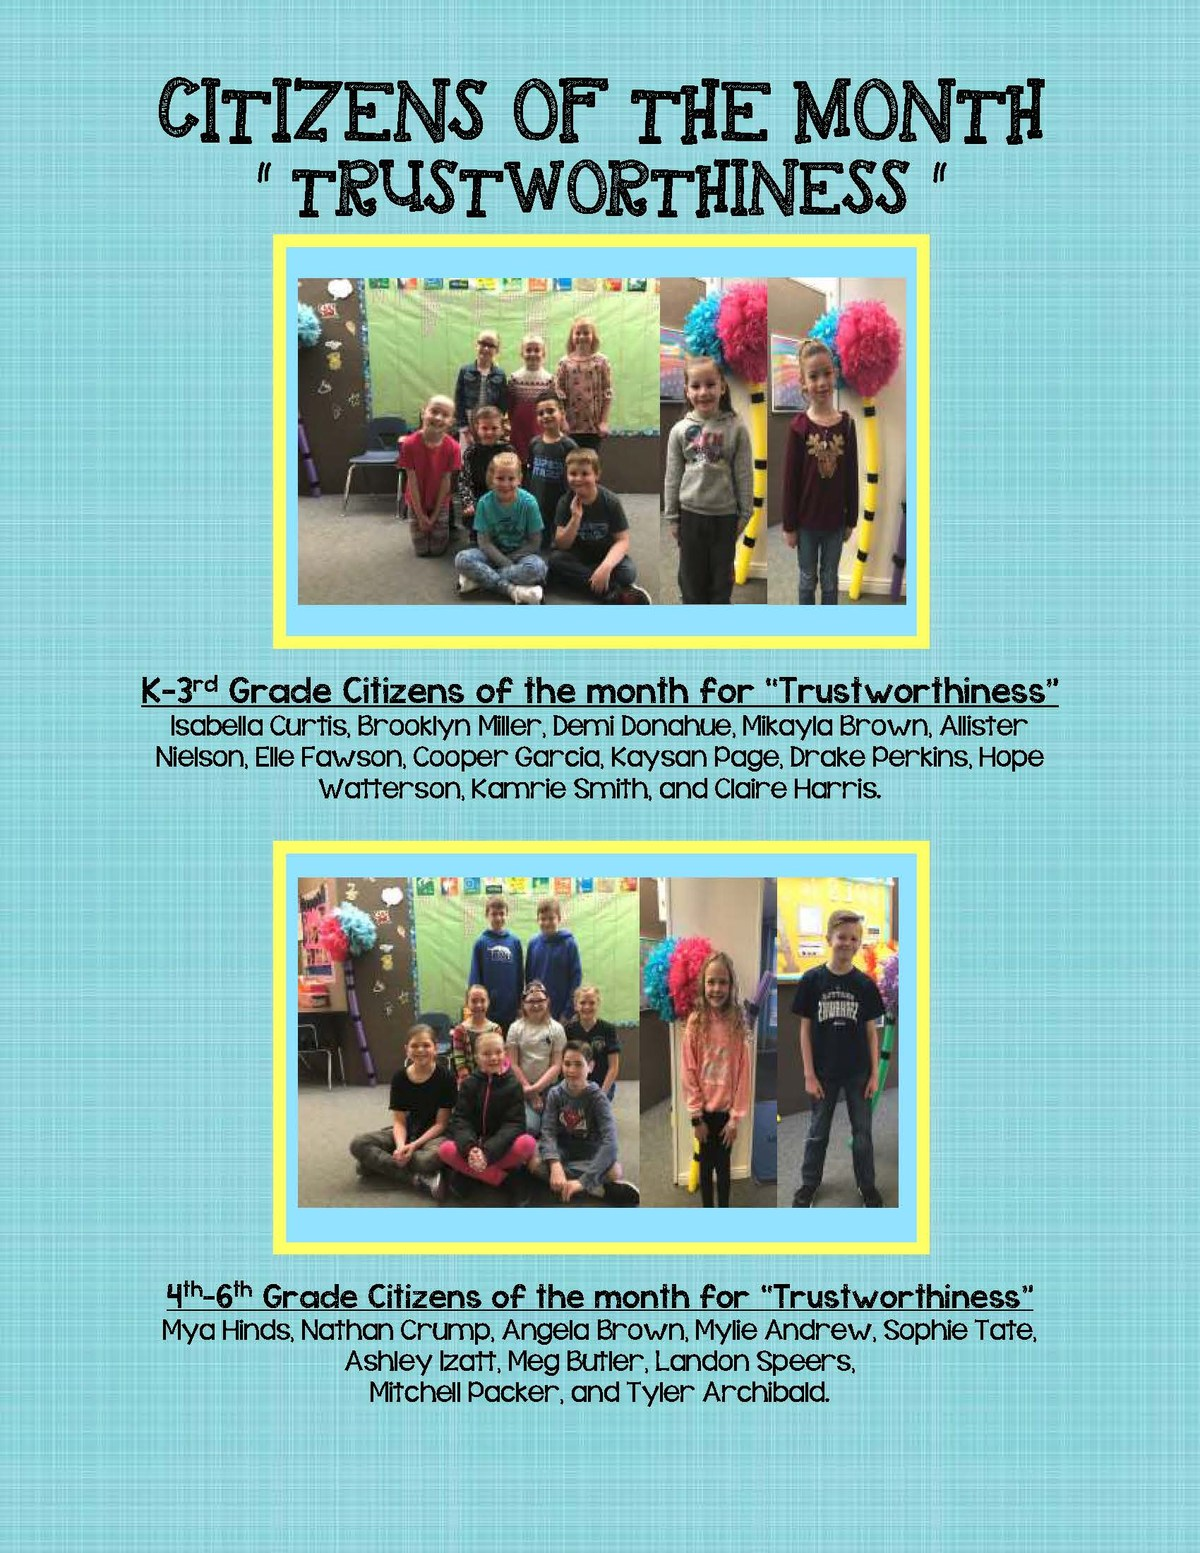 Citizen of the Month for Trustworthiness